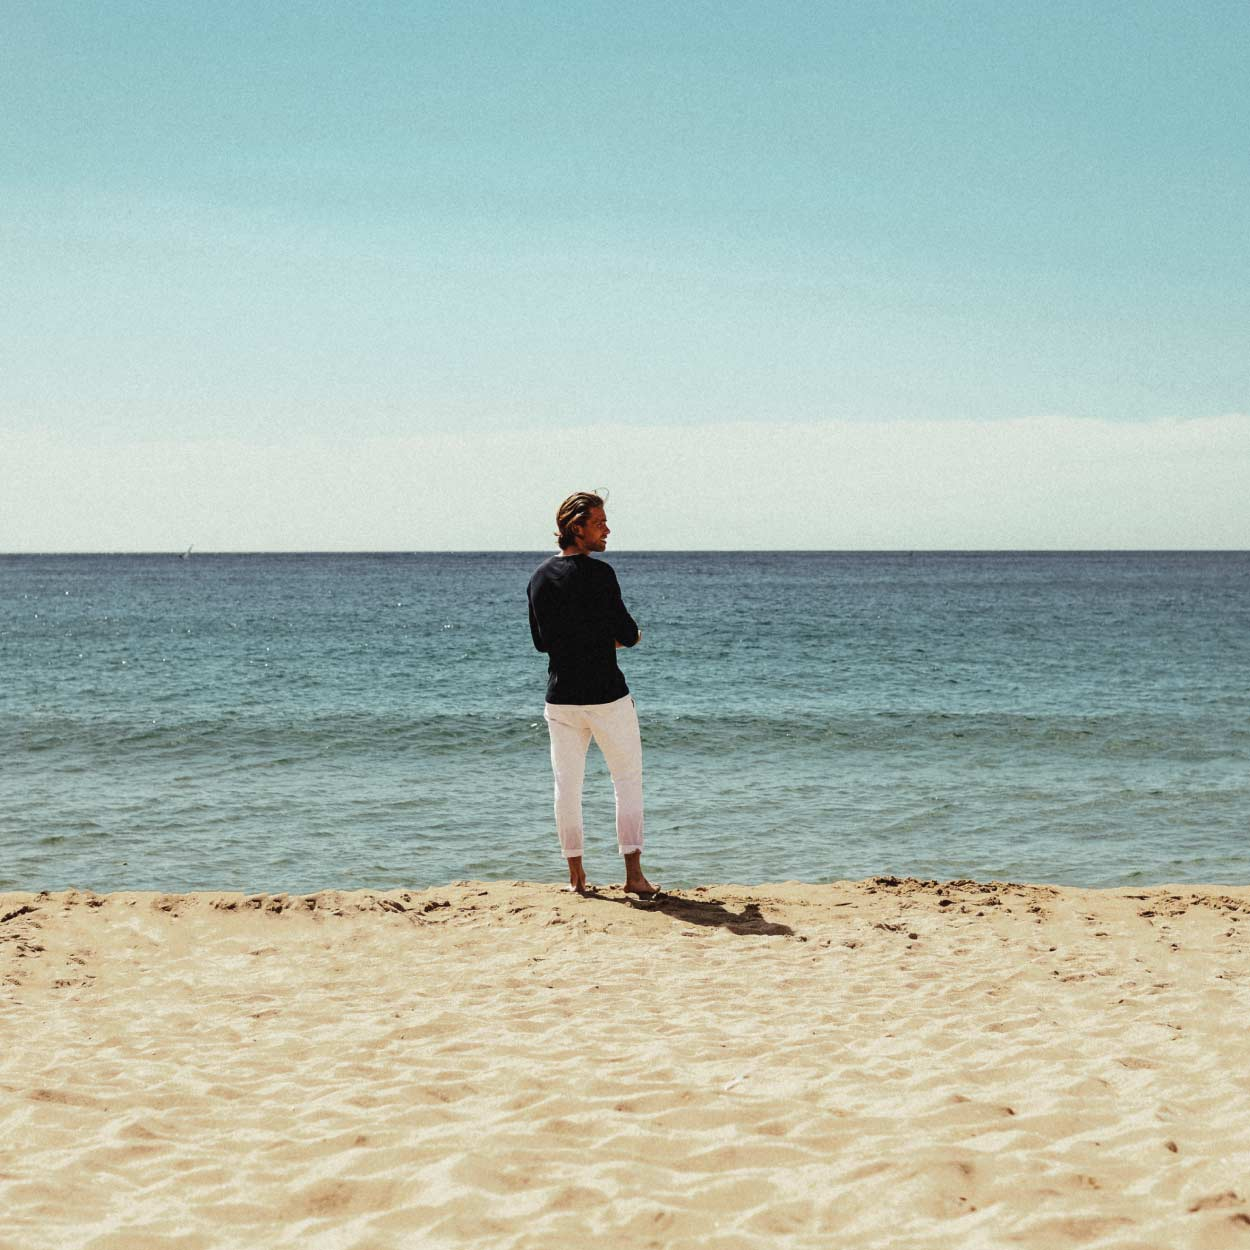 Manin blue shirt and white pants standing on the beach looking to the side